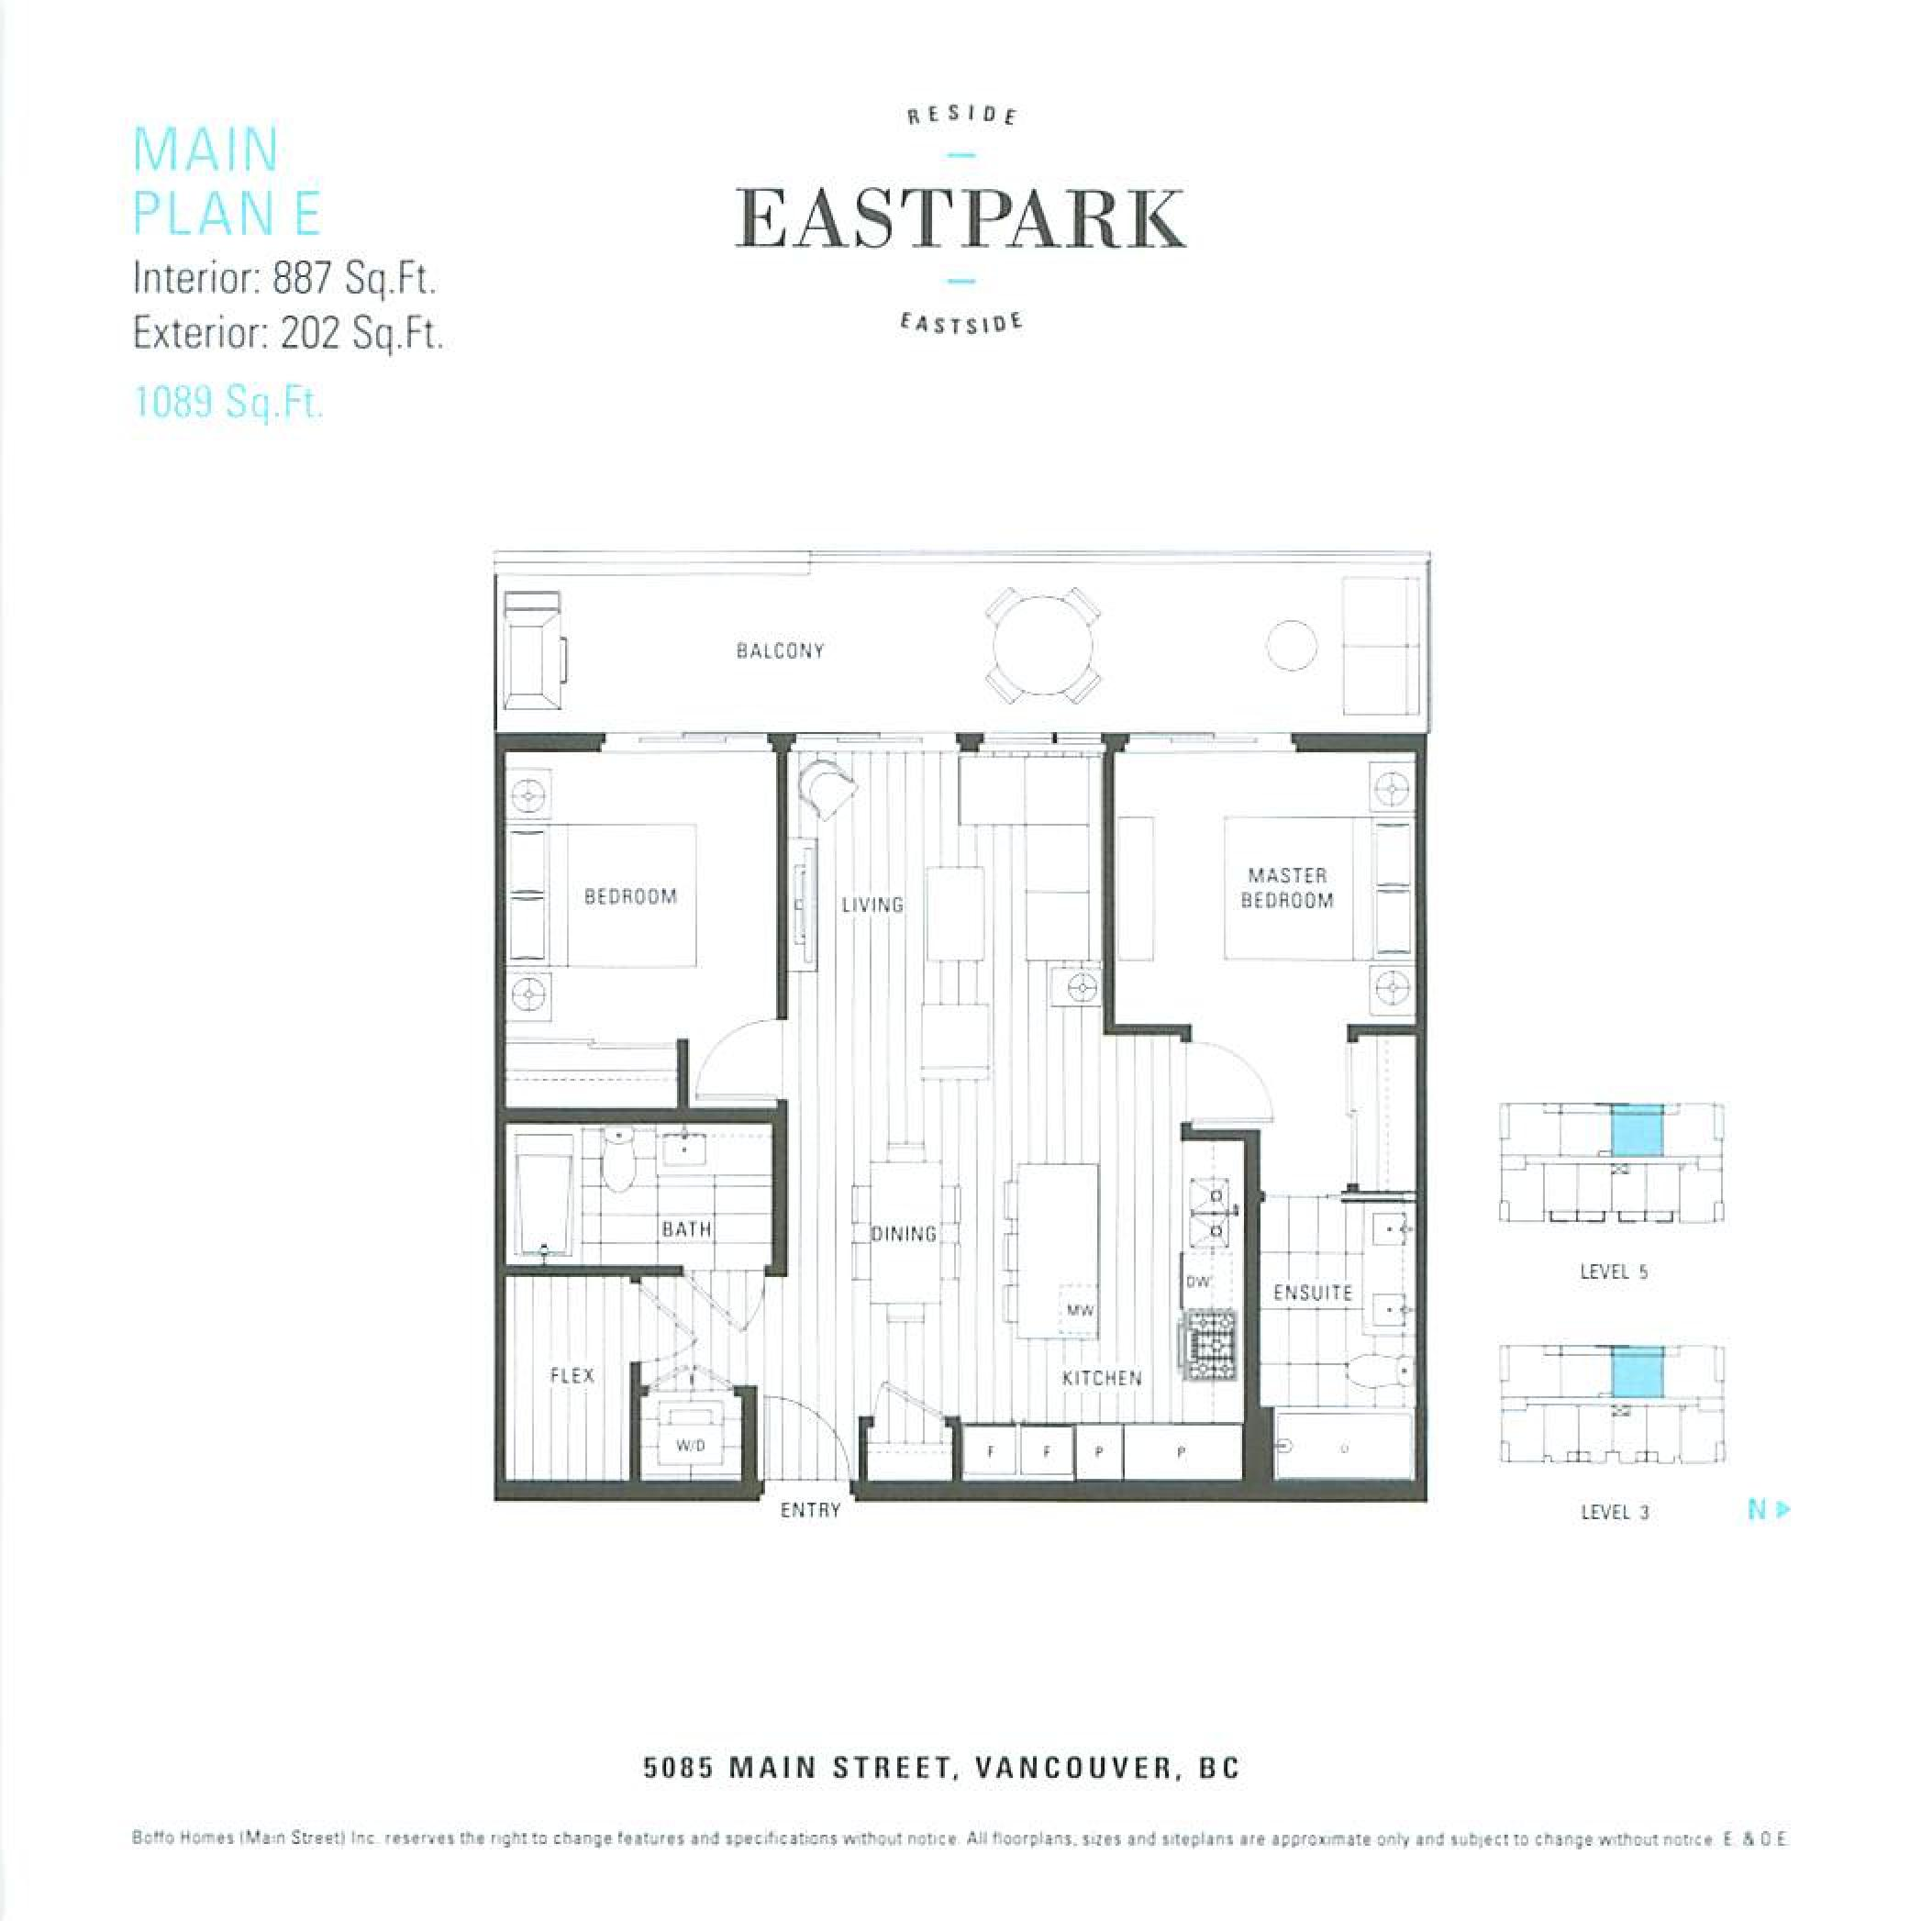 EastPark Main Smaller Floor Plans Mike Stewart-page-005